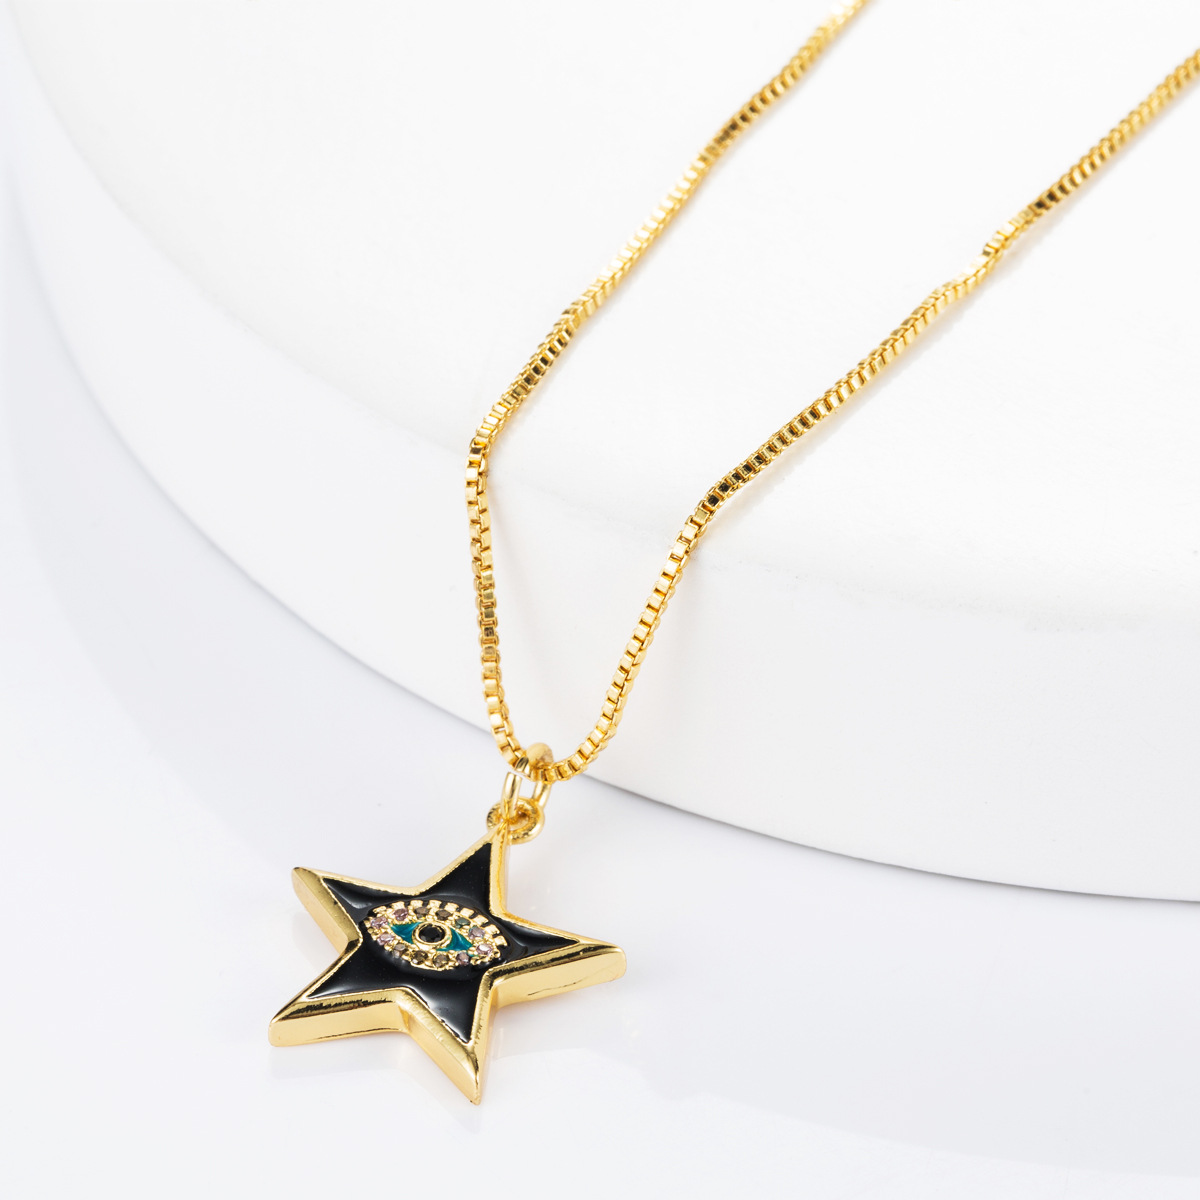 Copper micro-inlaid zircon eye five-pointed star clavicle chain necklace NHLN155105